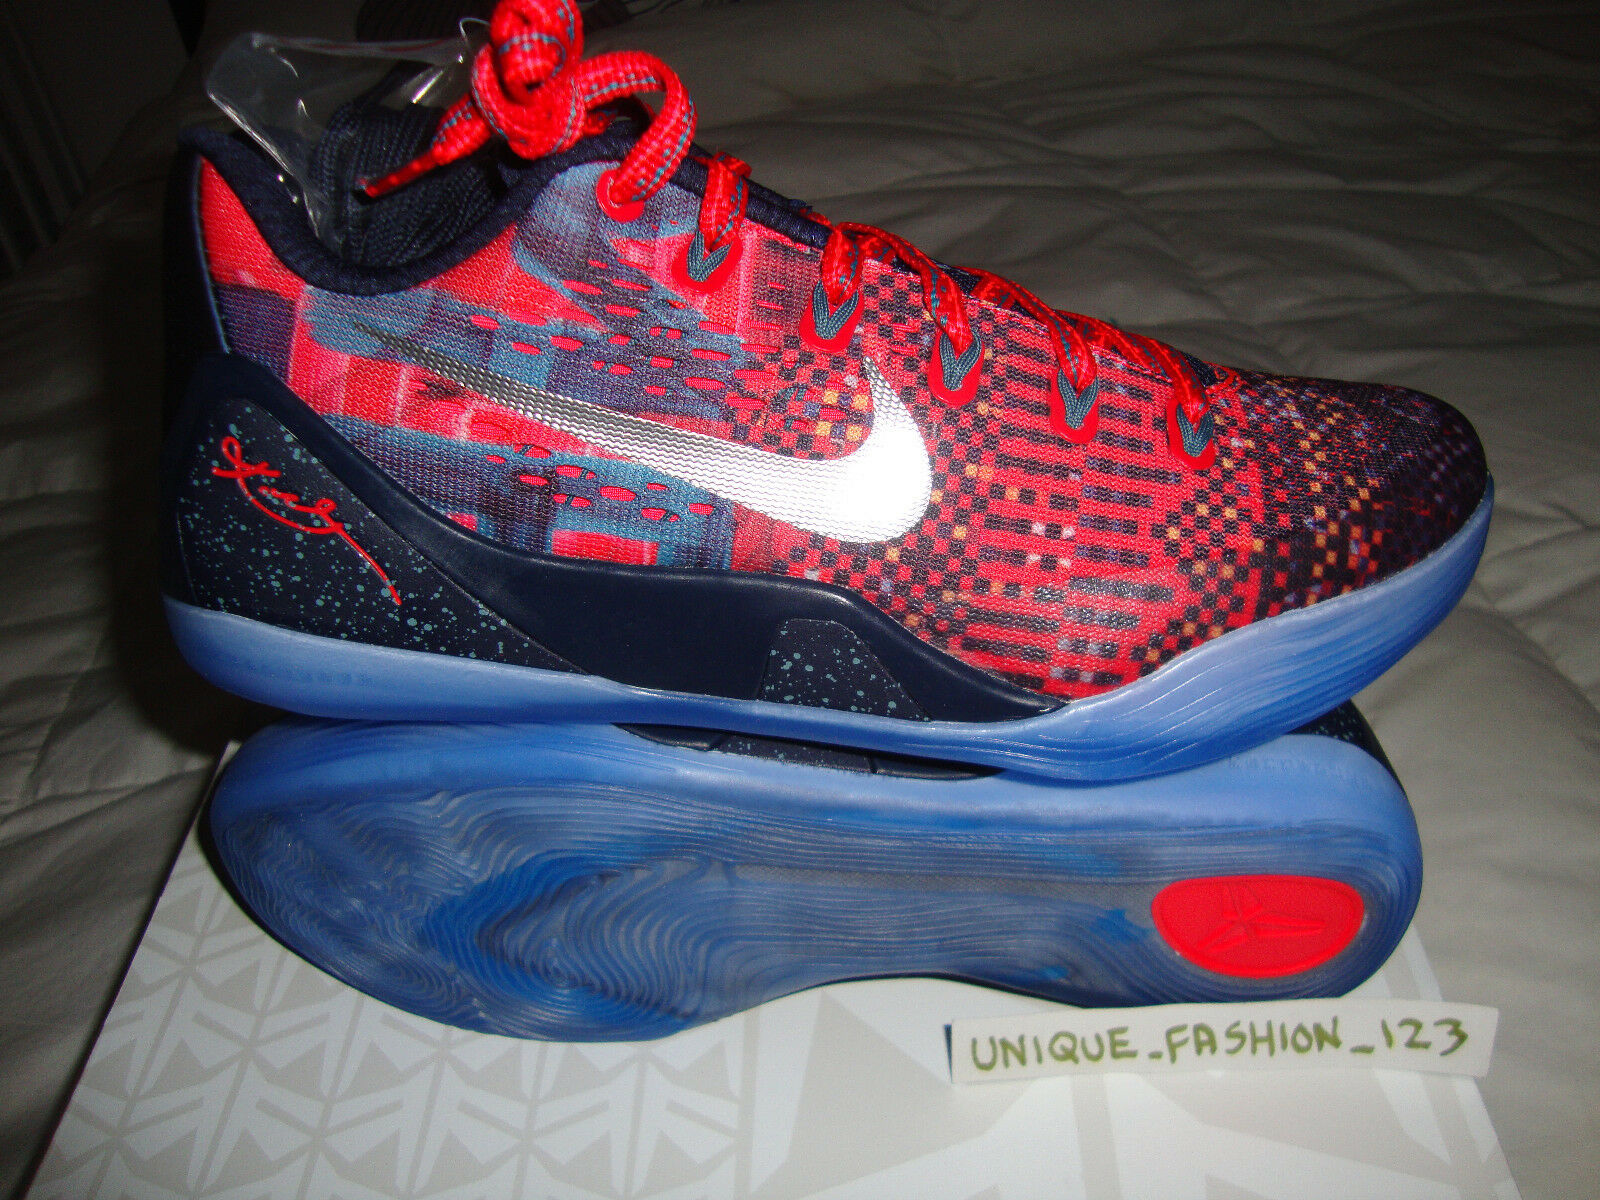 9bf1182a146 NIKE KOBE IX 9 EM PREMIUM CRIMSON LASER US INFLUENCE PRELUDE 7.5 HTM  nybvxi3854-Athletic Shoes